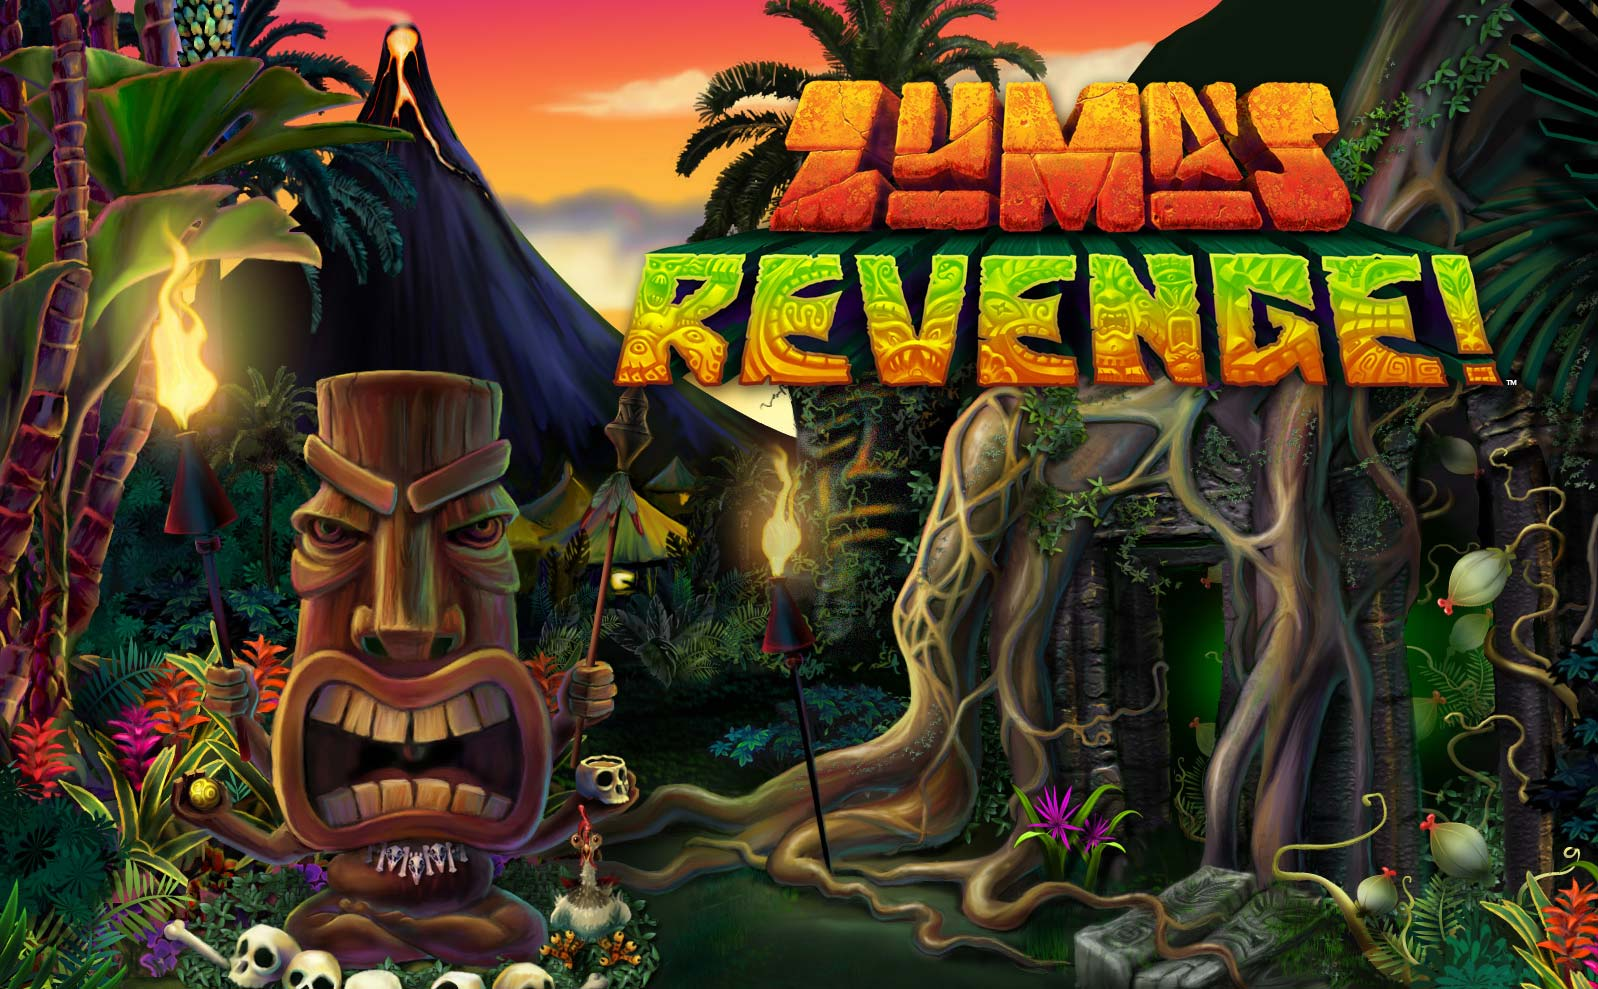 zumas-revenge-title-screen-screenshot.jpg